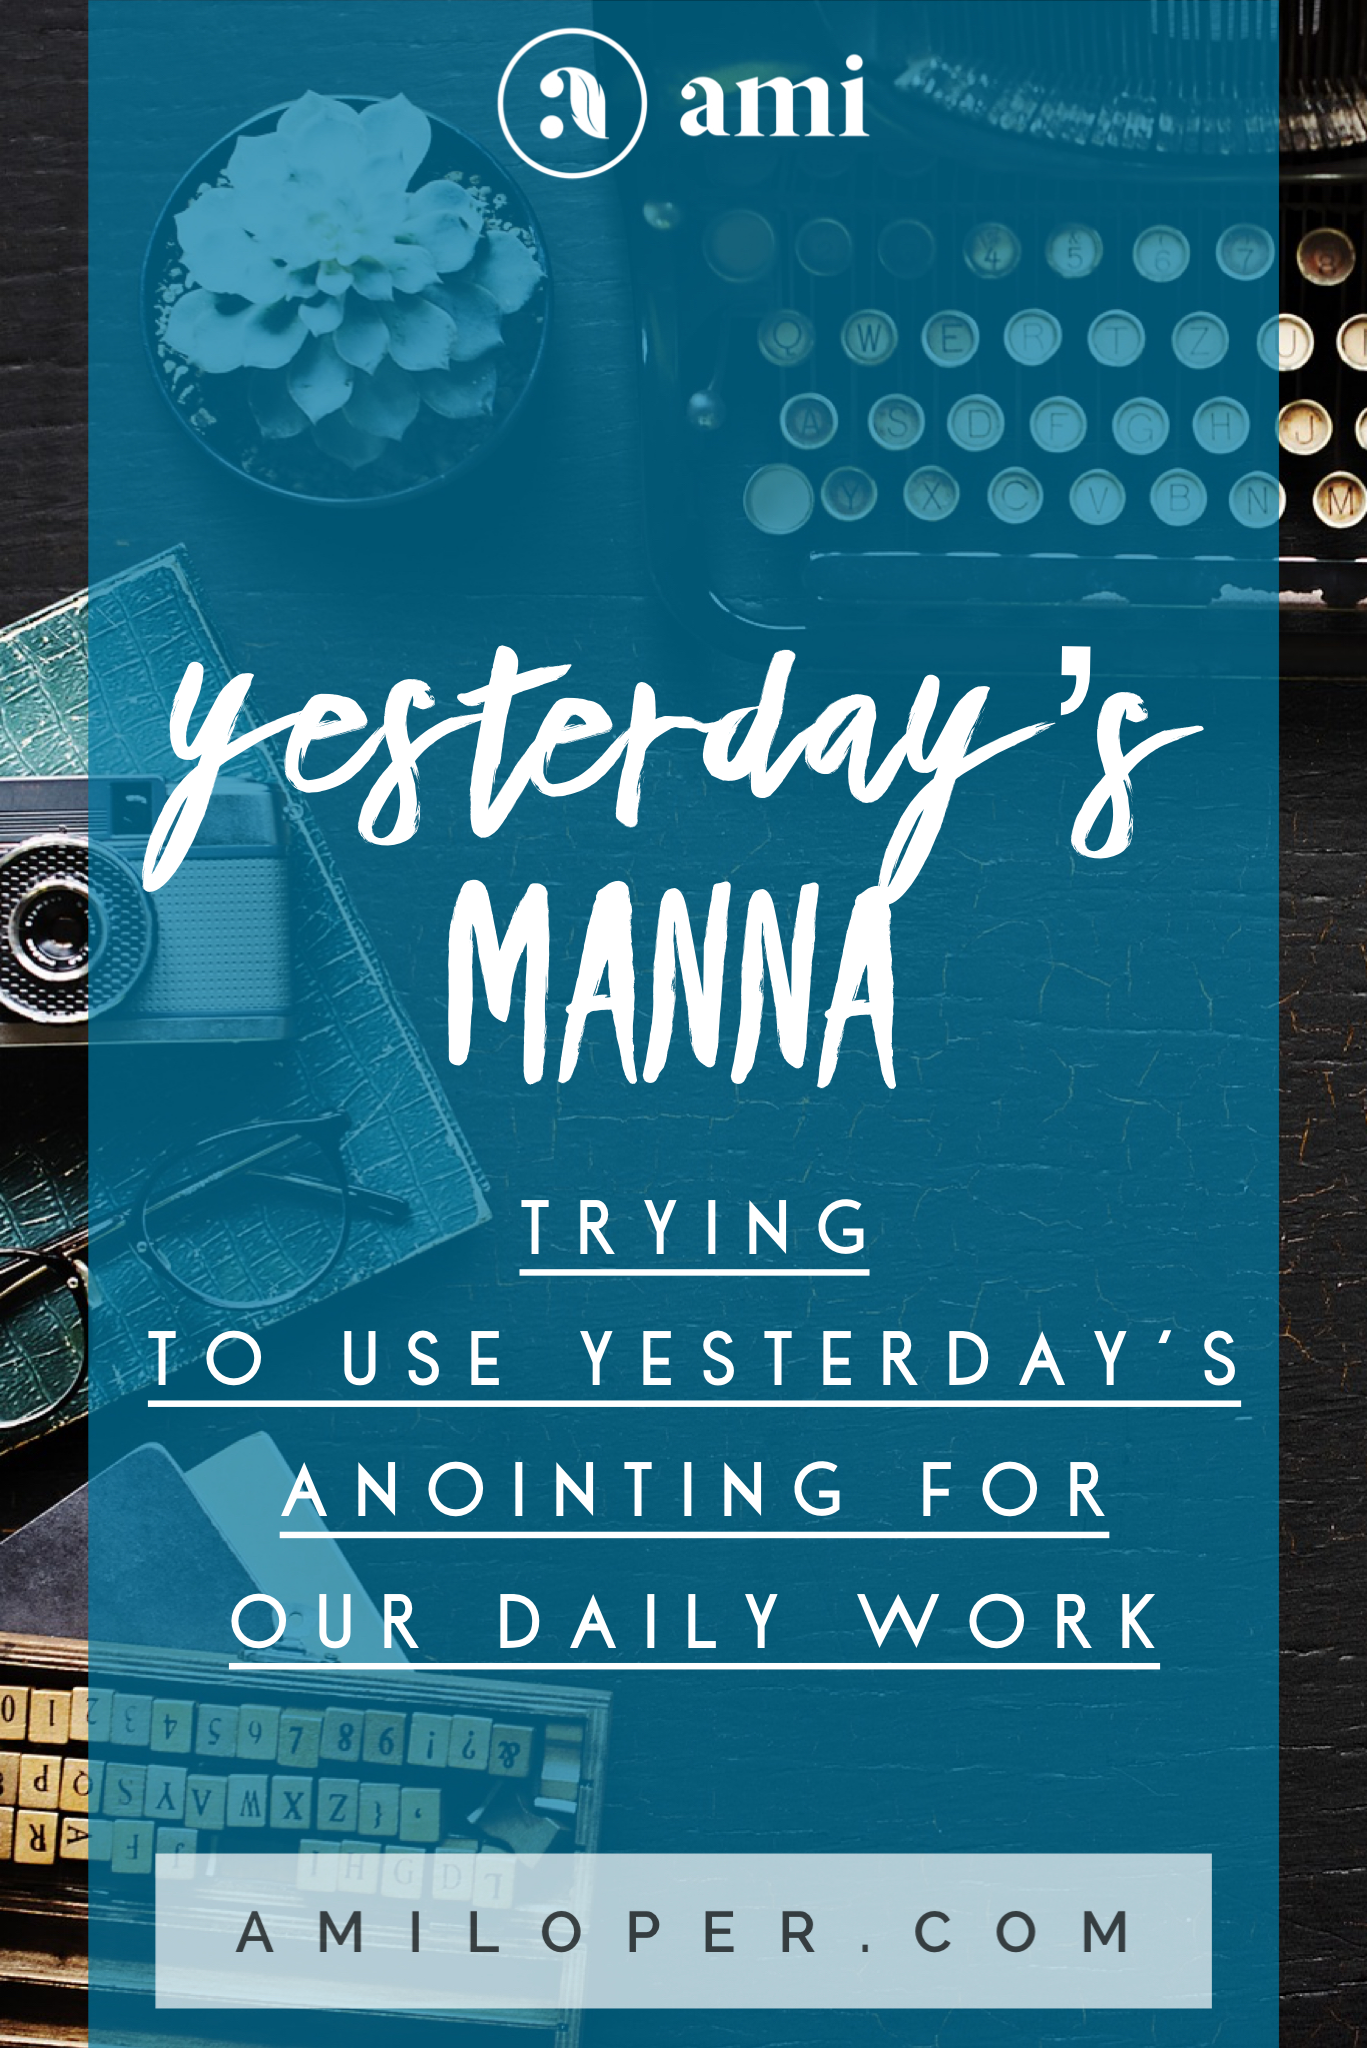 How effective do you desire to be in your daily work? Whatever field we are in, our work has eternal value. How can we make sure we are having the impact the Lord intends us to have? #ChristianBlog #YourBestLife #LiveYourPassion